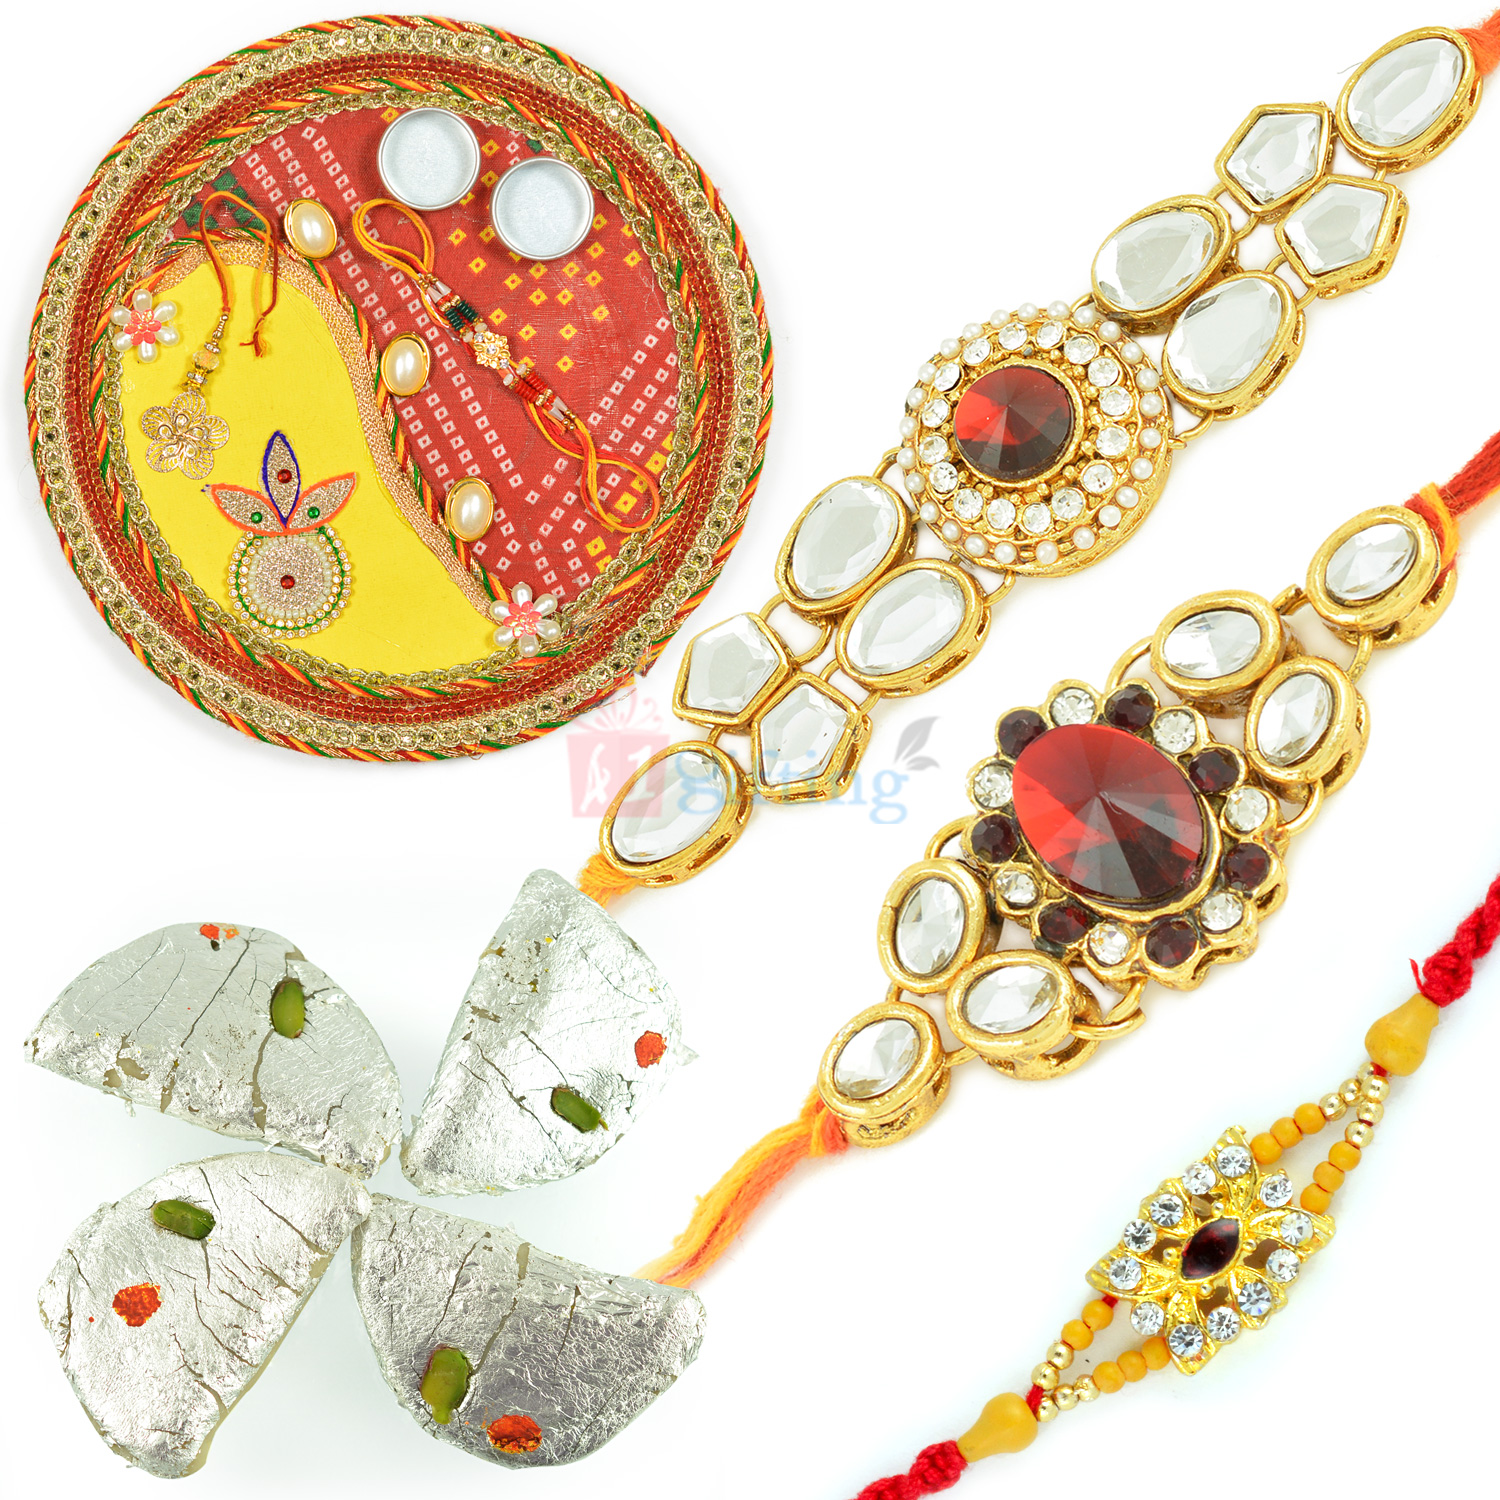 Dearest 3 Brother Rakhi with Rakhi Thali n Kaju Gujia Hamper